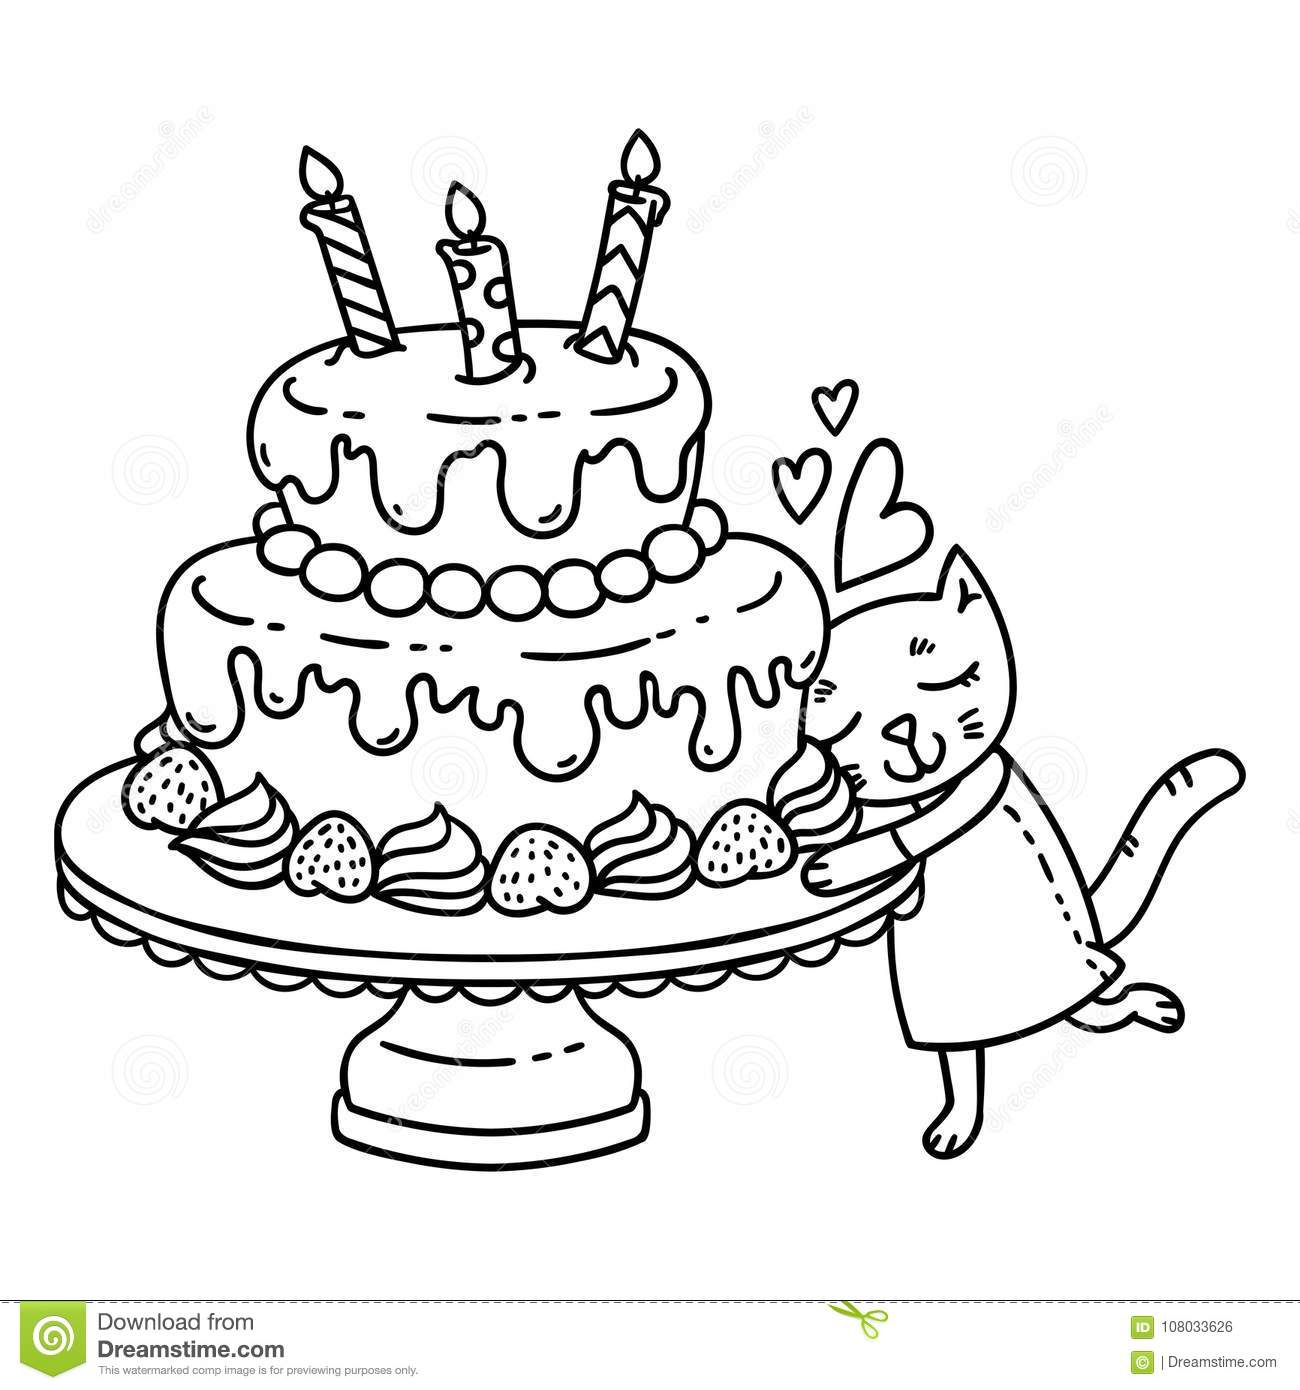 Birthday Cake With Candle And Cute Cat Isolated Objects On White Background Vector Illustration Coloring Page